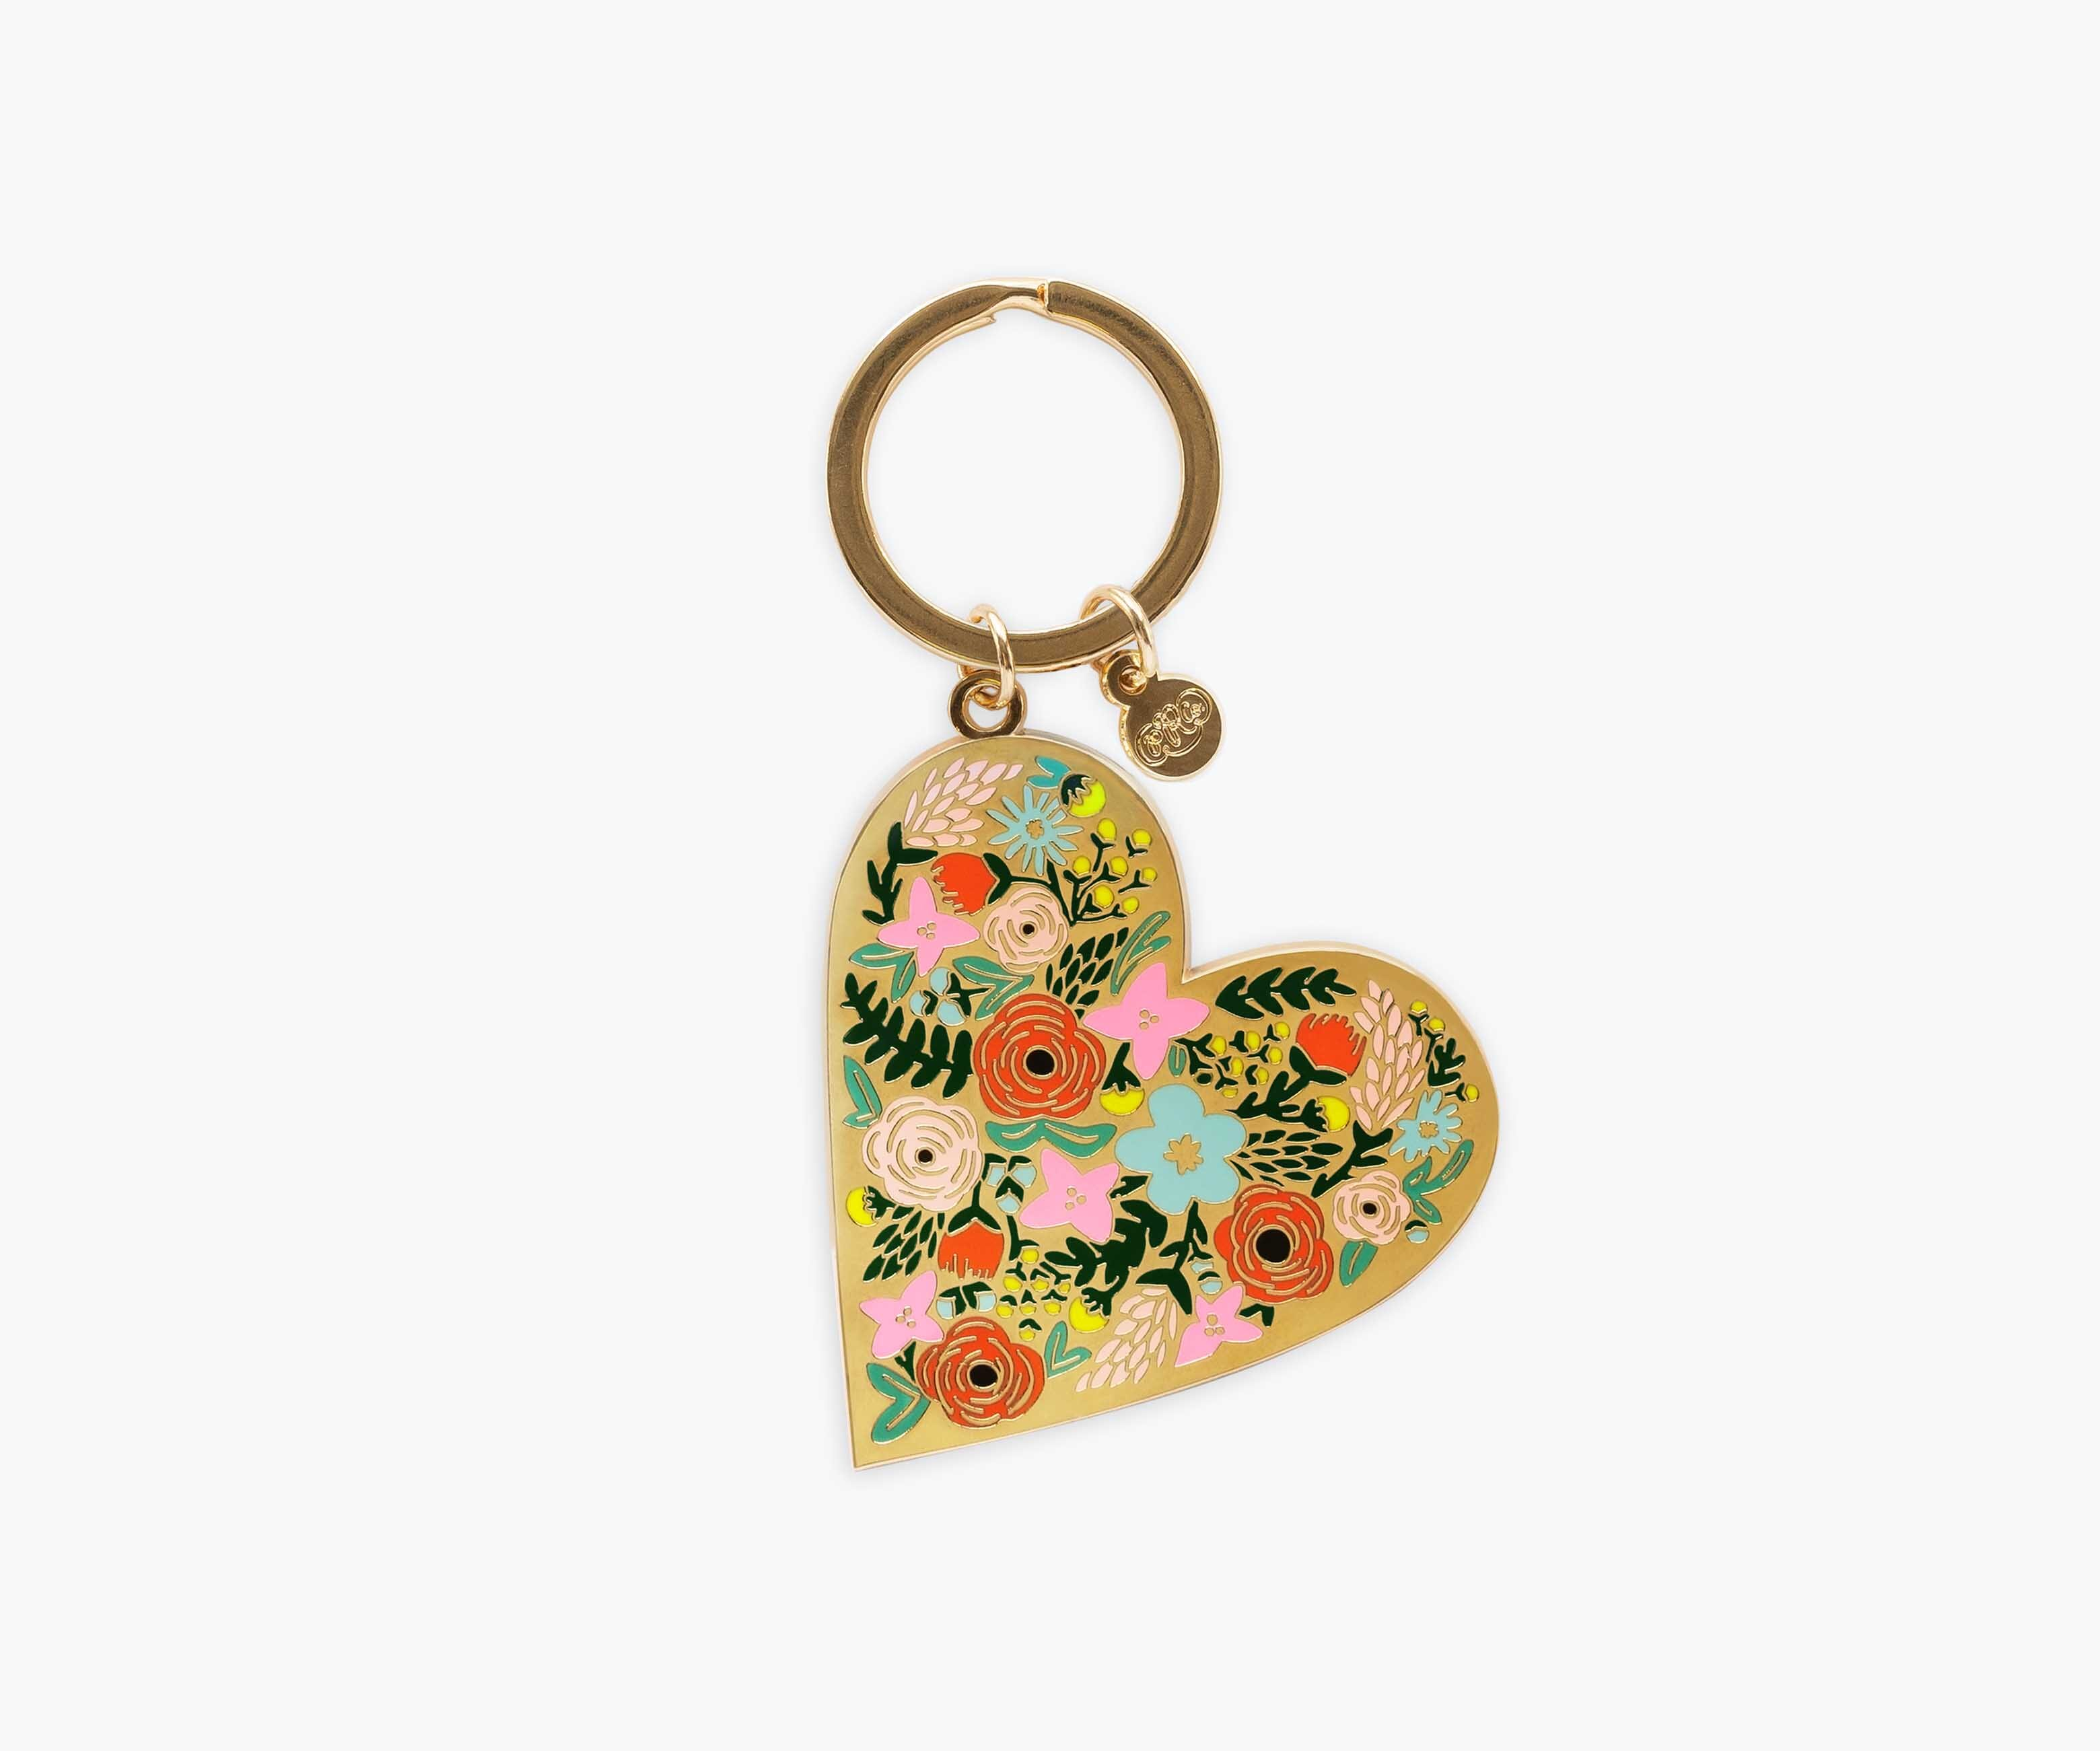 Custom Keychain for woman Floral Gold Key Lanyard Gift for Her Key Fob Wristlet Rifle Paper Co Personalized Wristlet Keychain